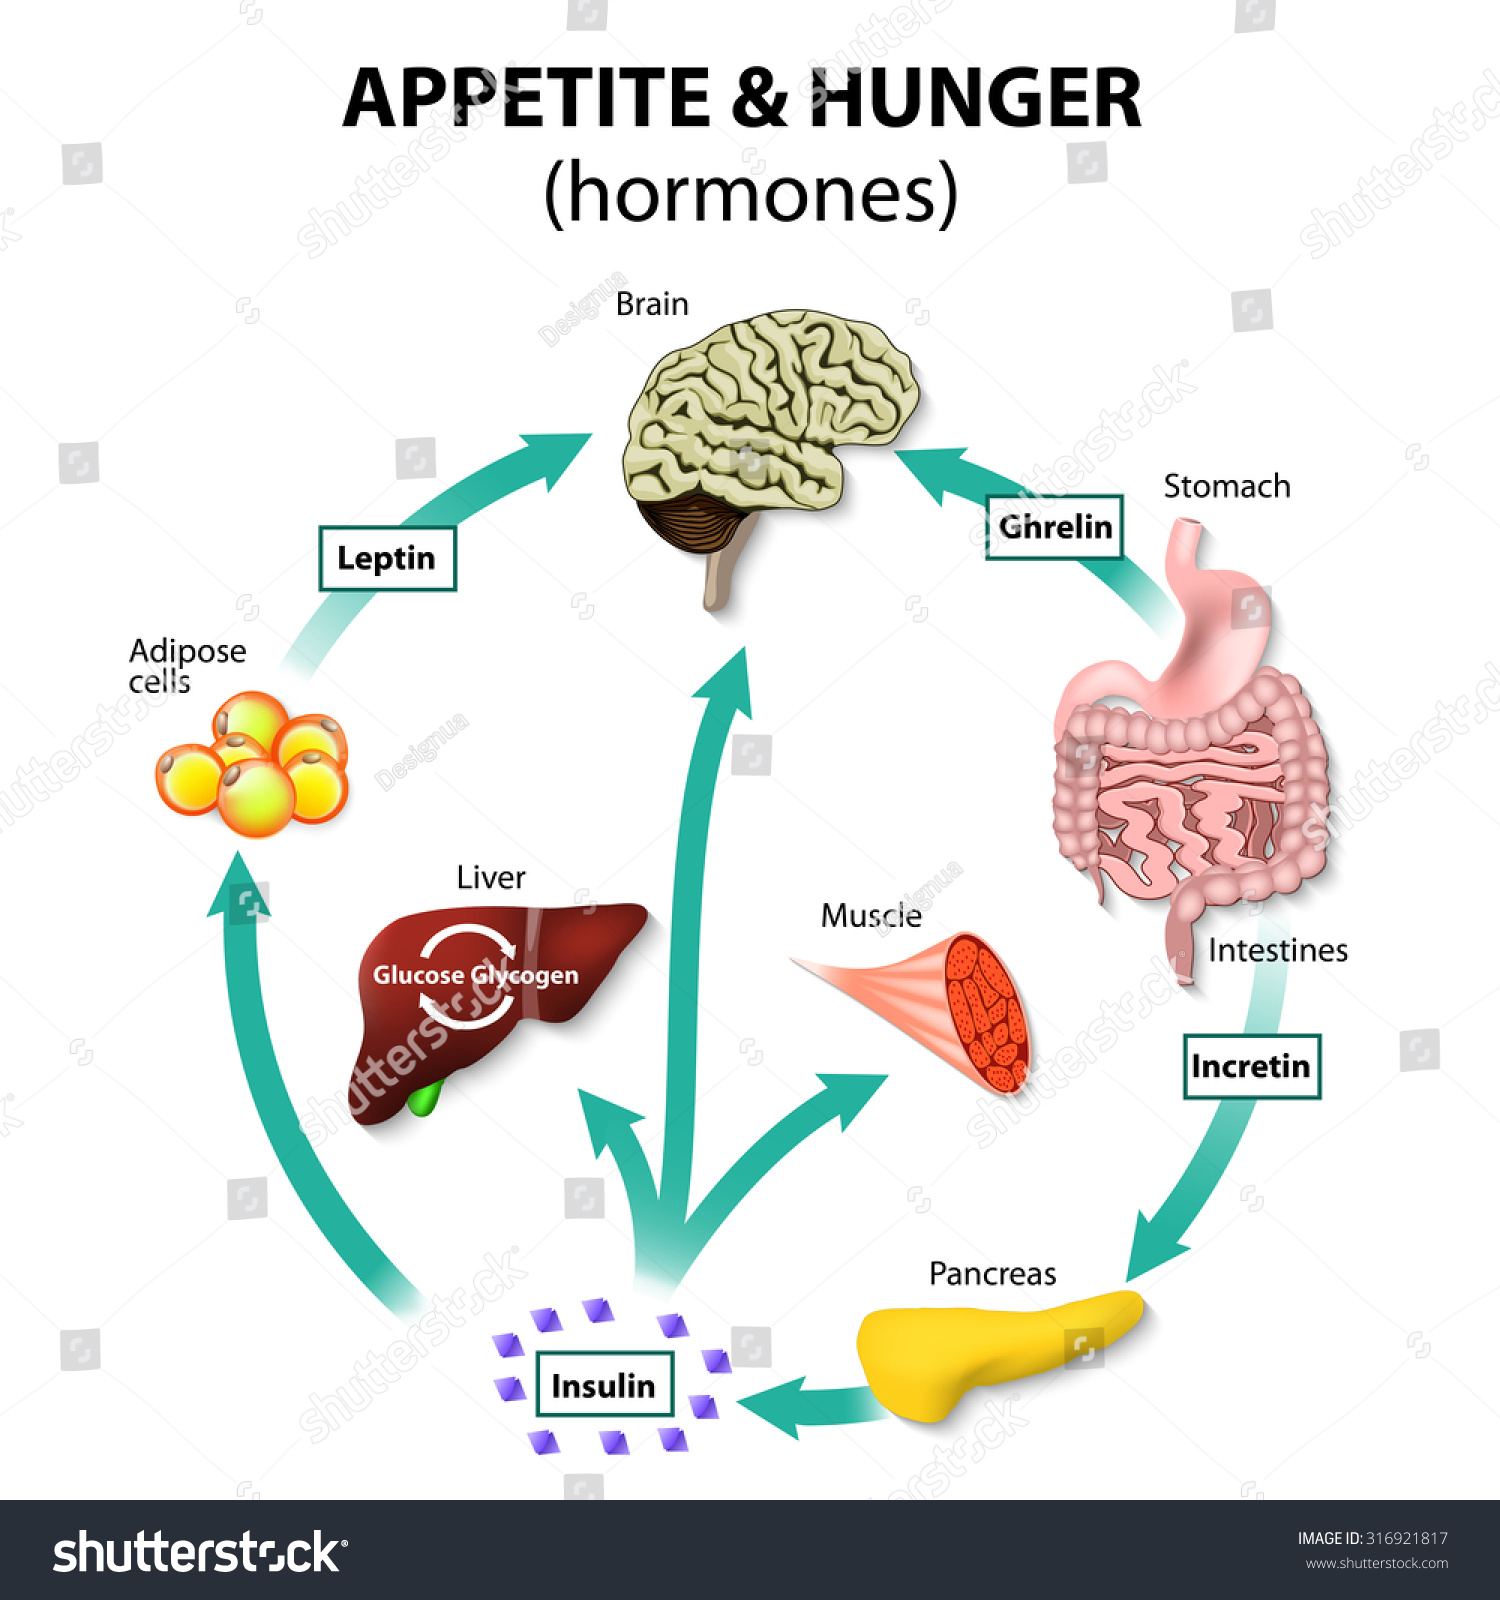 Hormones appetite hunger human endocrine system em ilustrao stock hormones appetite and hunger human endocrine system incretin ghrelin leptin and insulin ccuart Choice Image